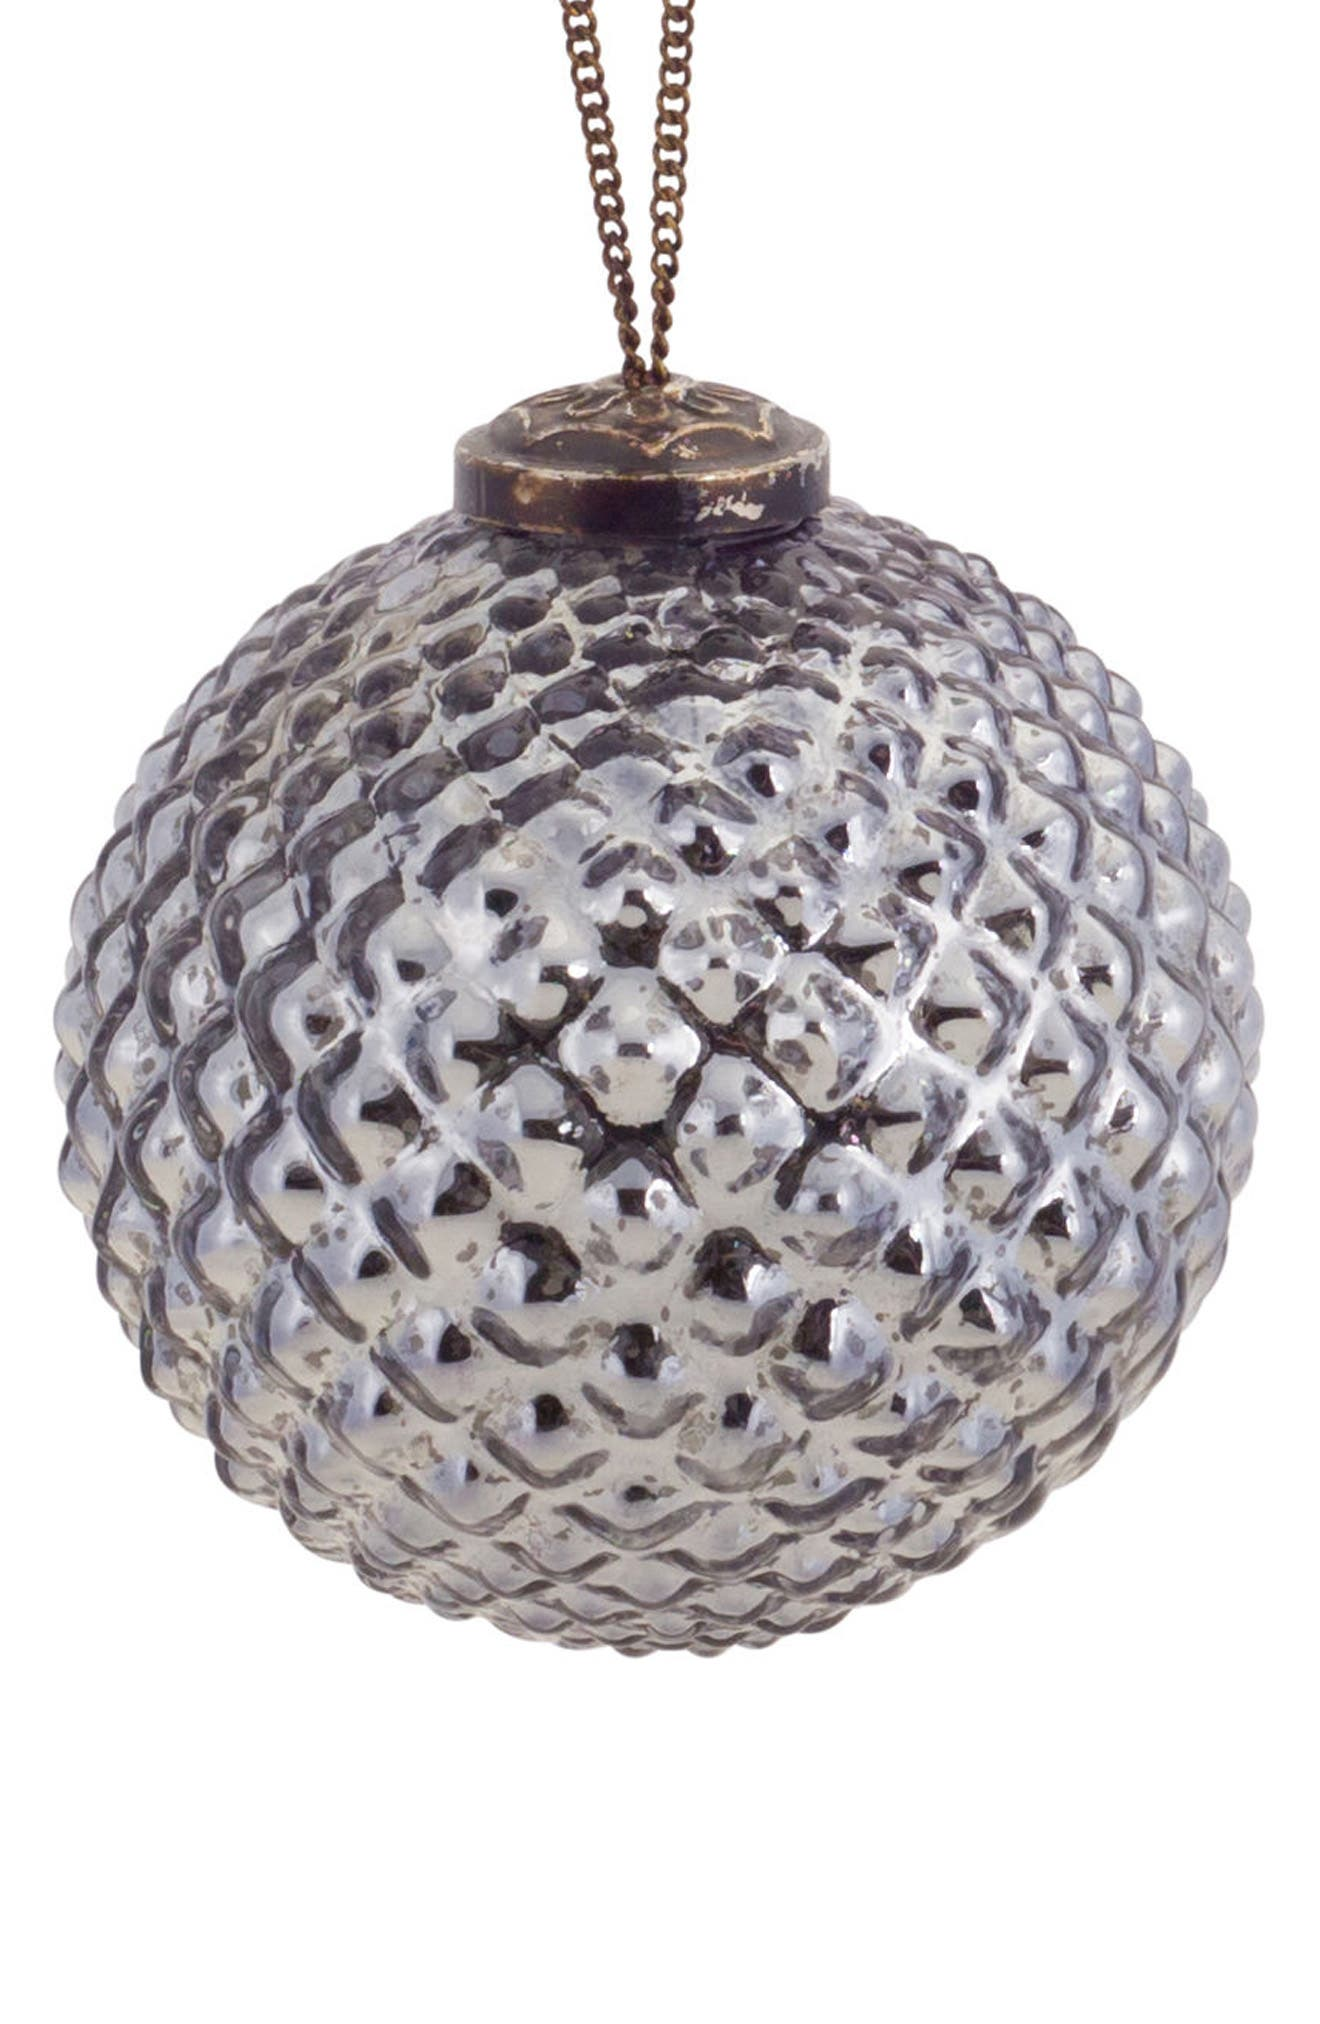 Melrose Gifts Round Glass Ornament